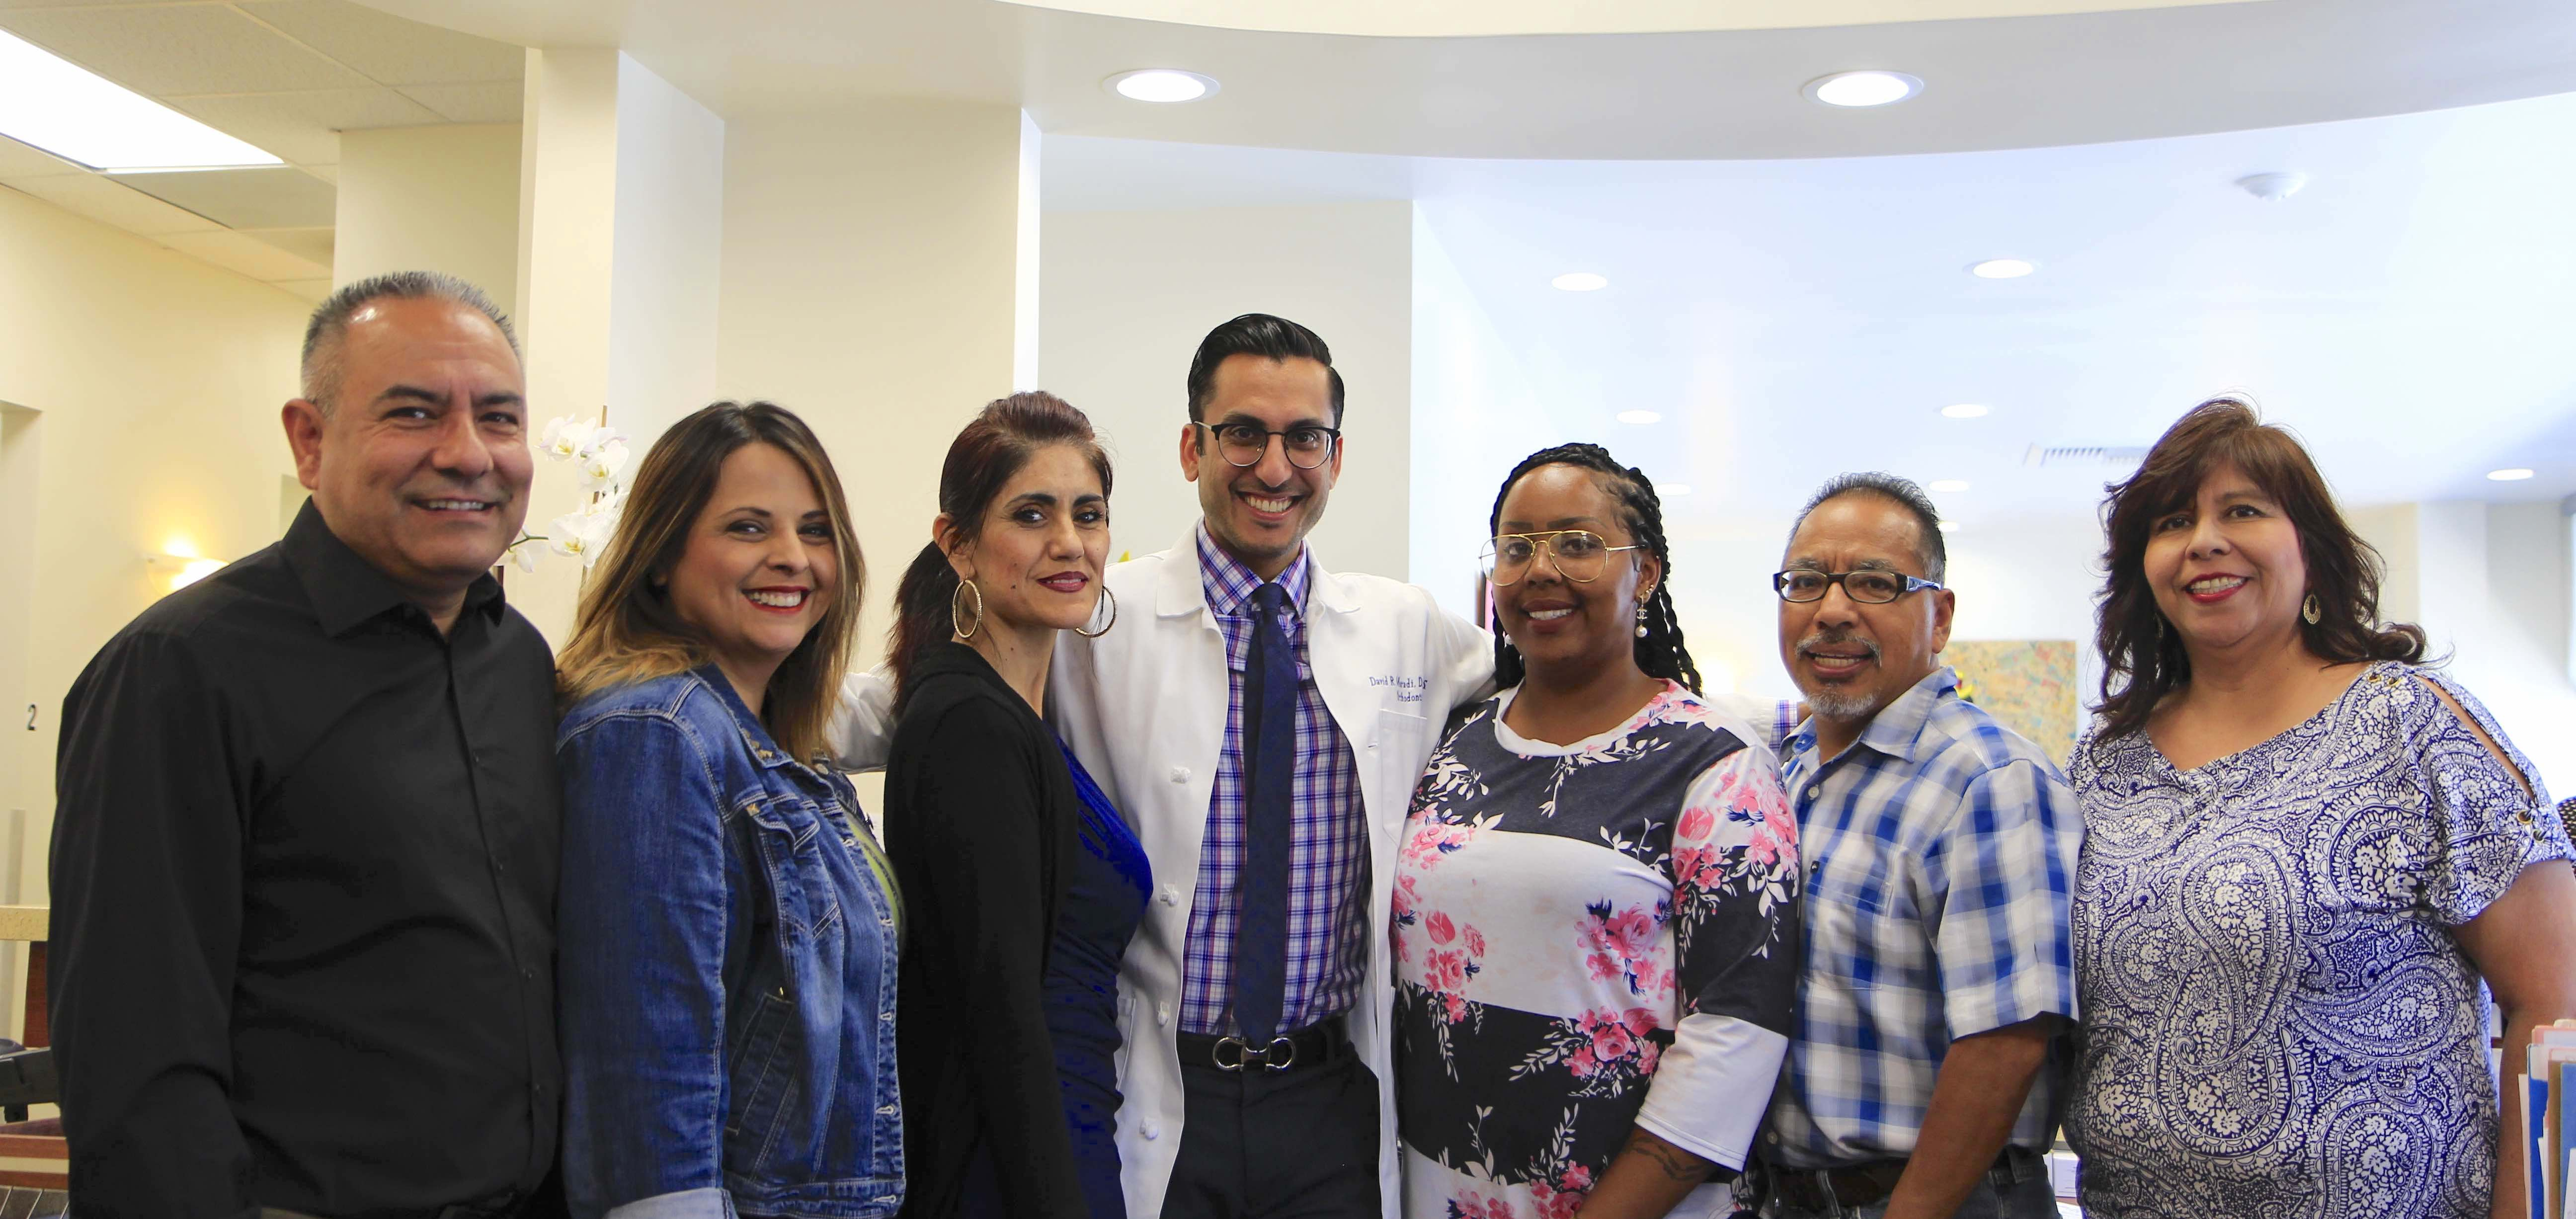 photo of dr. moradi,board certified dentist, and office staff at Frankel Dental Group in Culver City